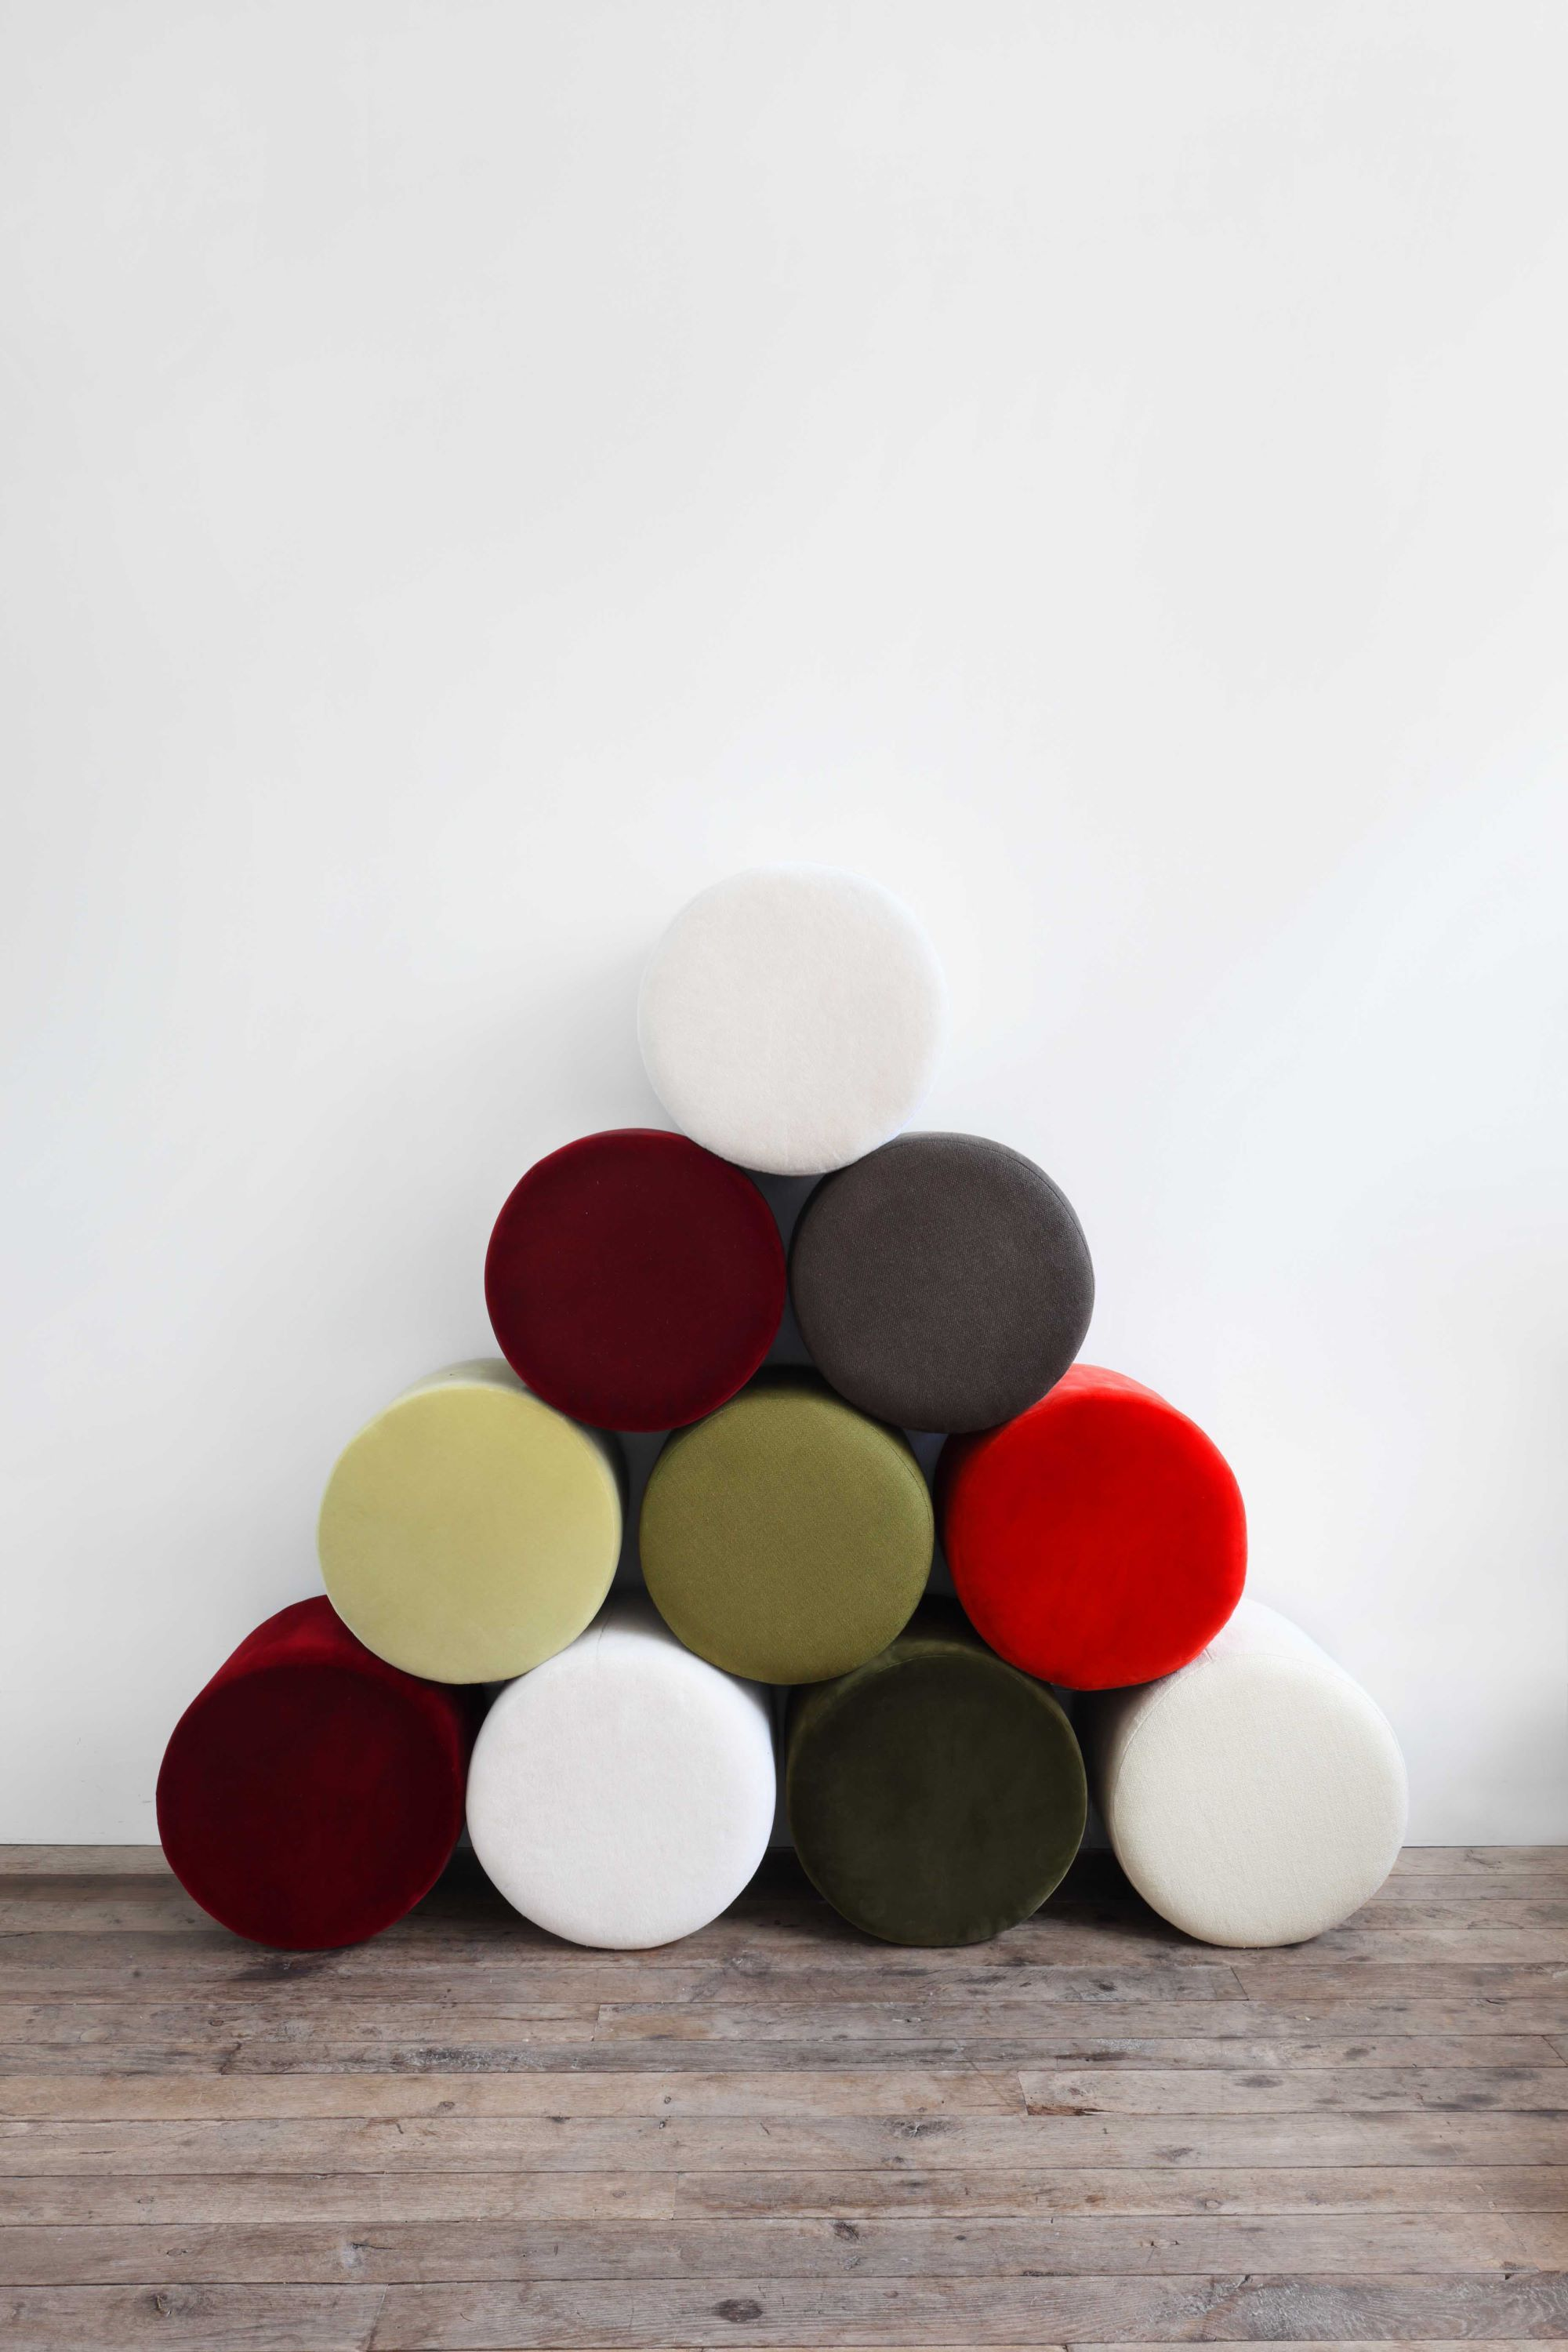 Enjoyable Small Round Ottoman By Rose Uniacke Caraccident5 Cool Chair Designs And Ideas Caraccident5Info